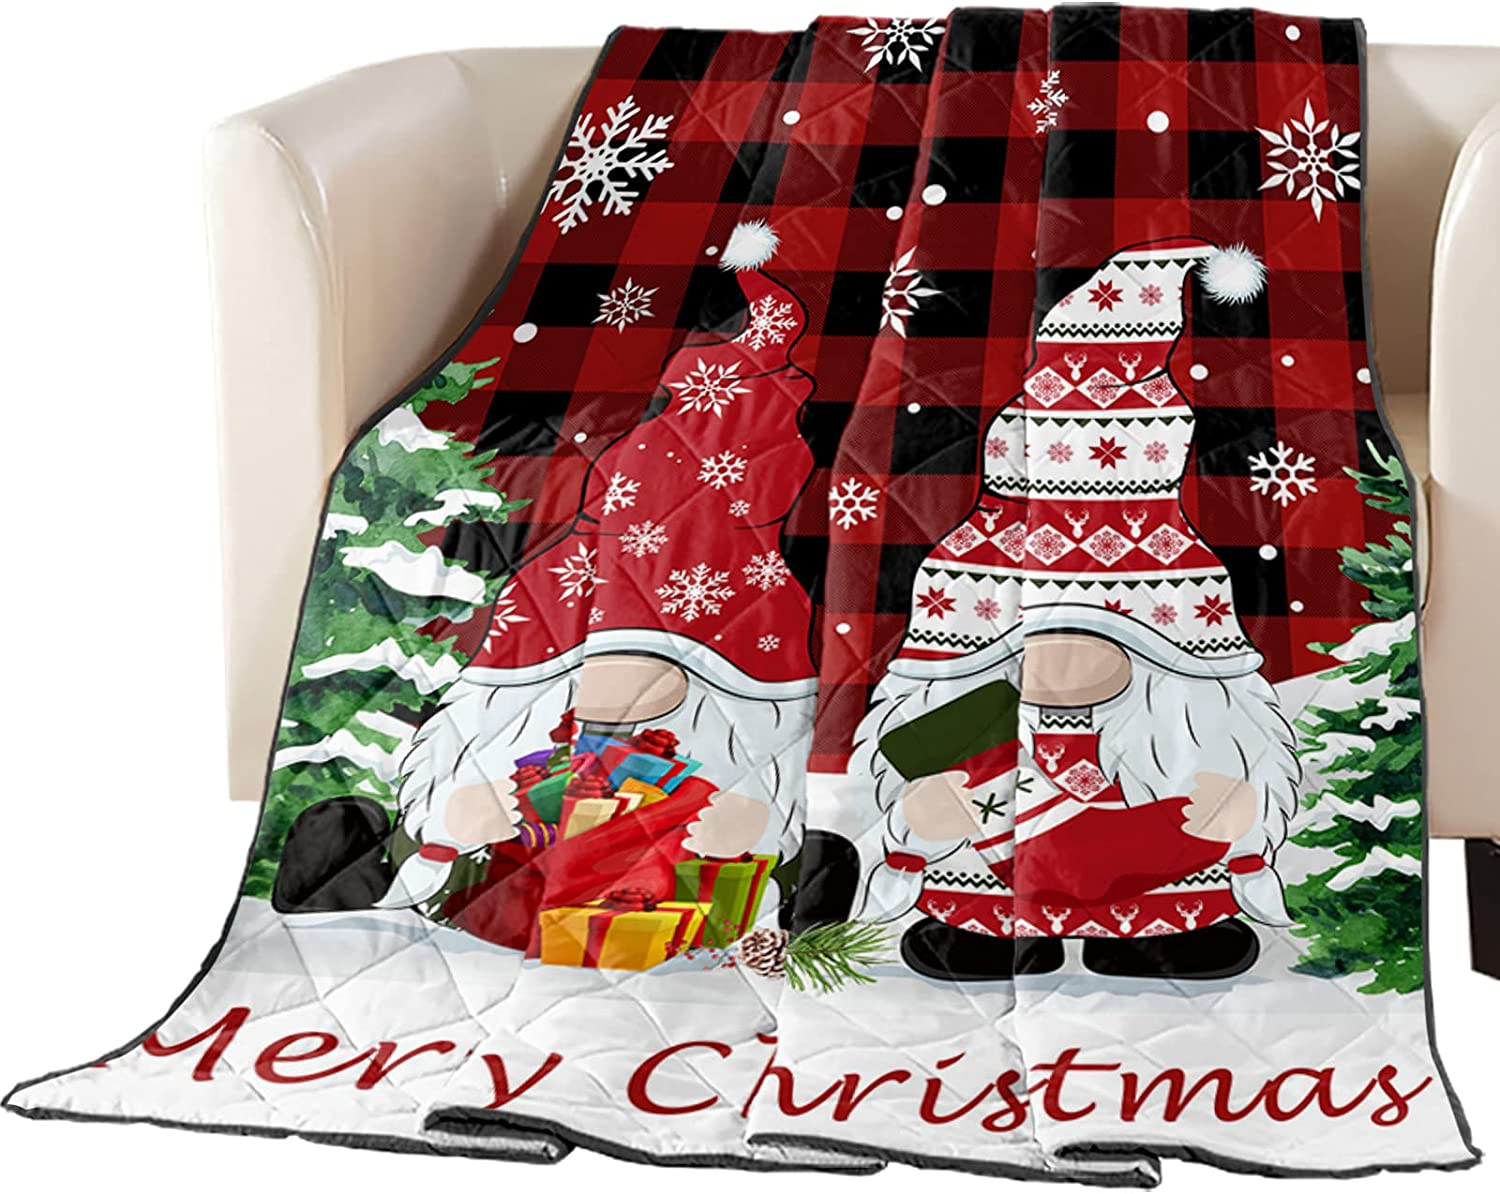 Luck Sky Max 55% OFF Premium Coverlet Diamond Stitched 90x102in Quilted Snow Ranking TOP13